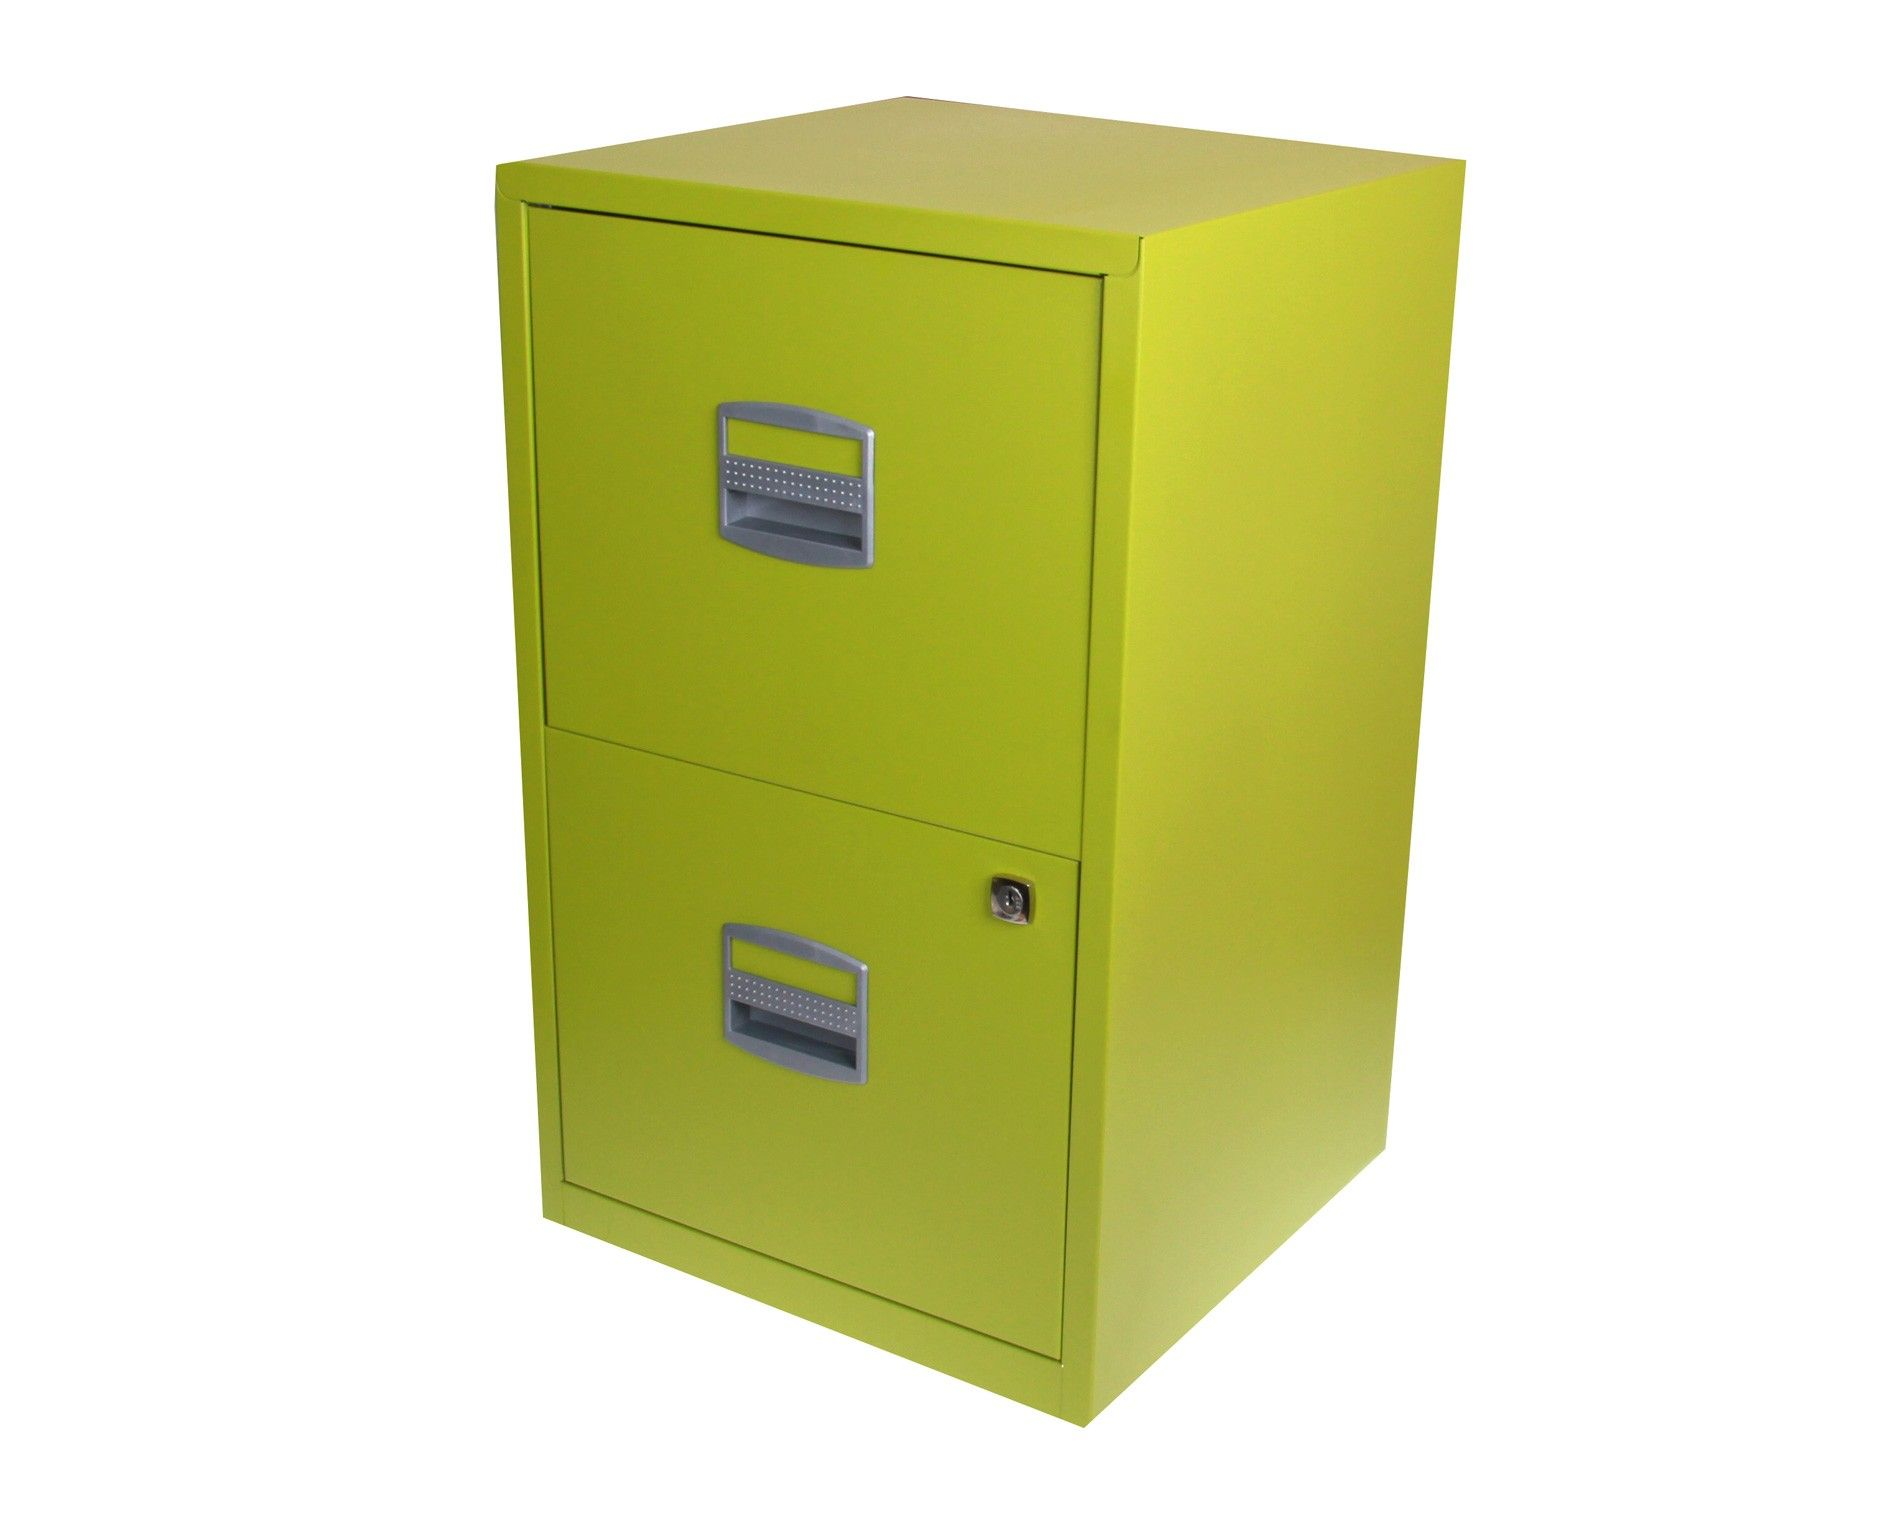 2e888c248e6 Bisley Metal Filing Cabinet 2 Drawer A4